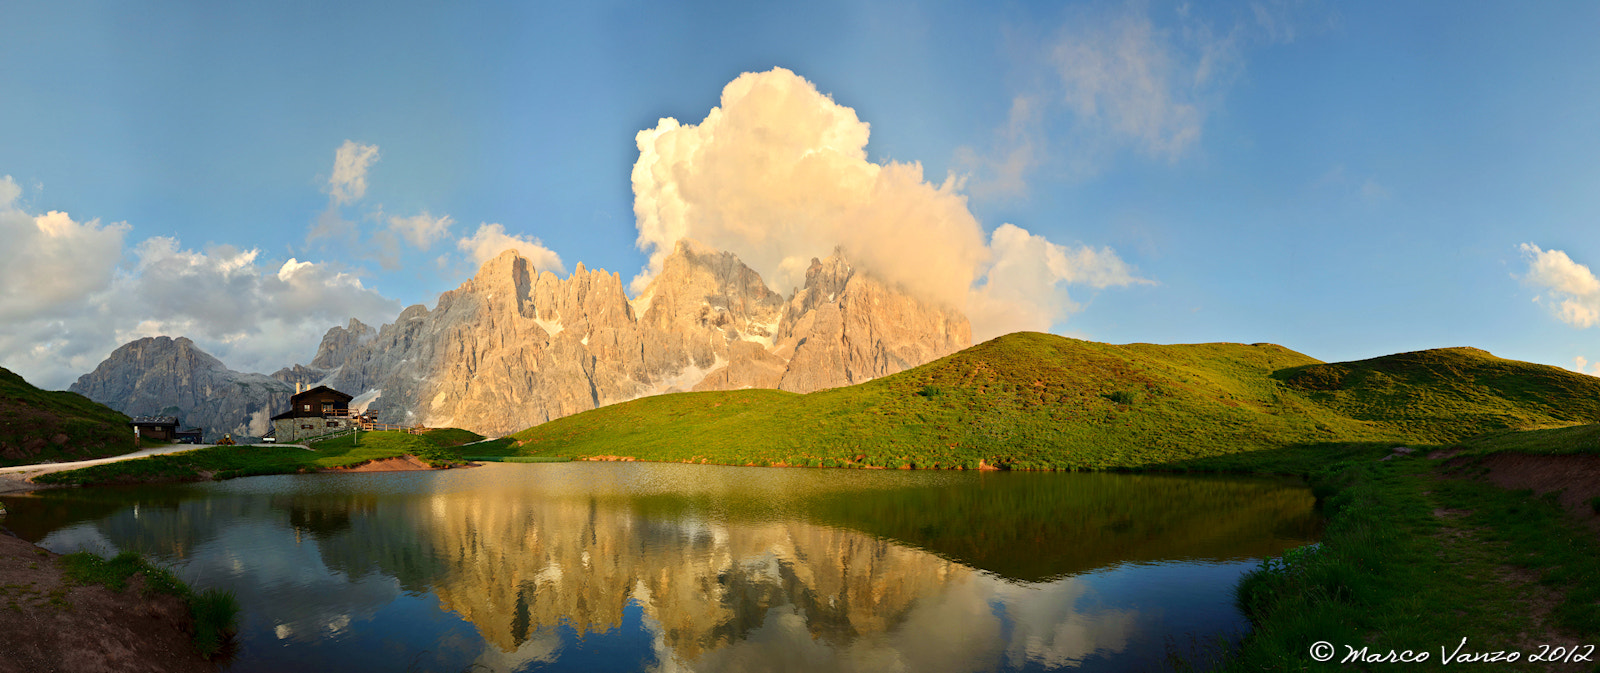 Photograph Baita Segantini by Marco Vanzo on 500px